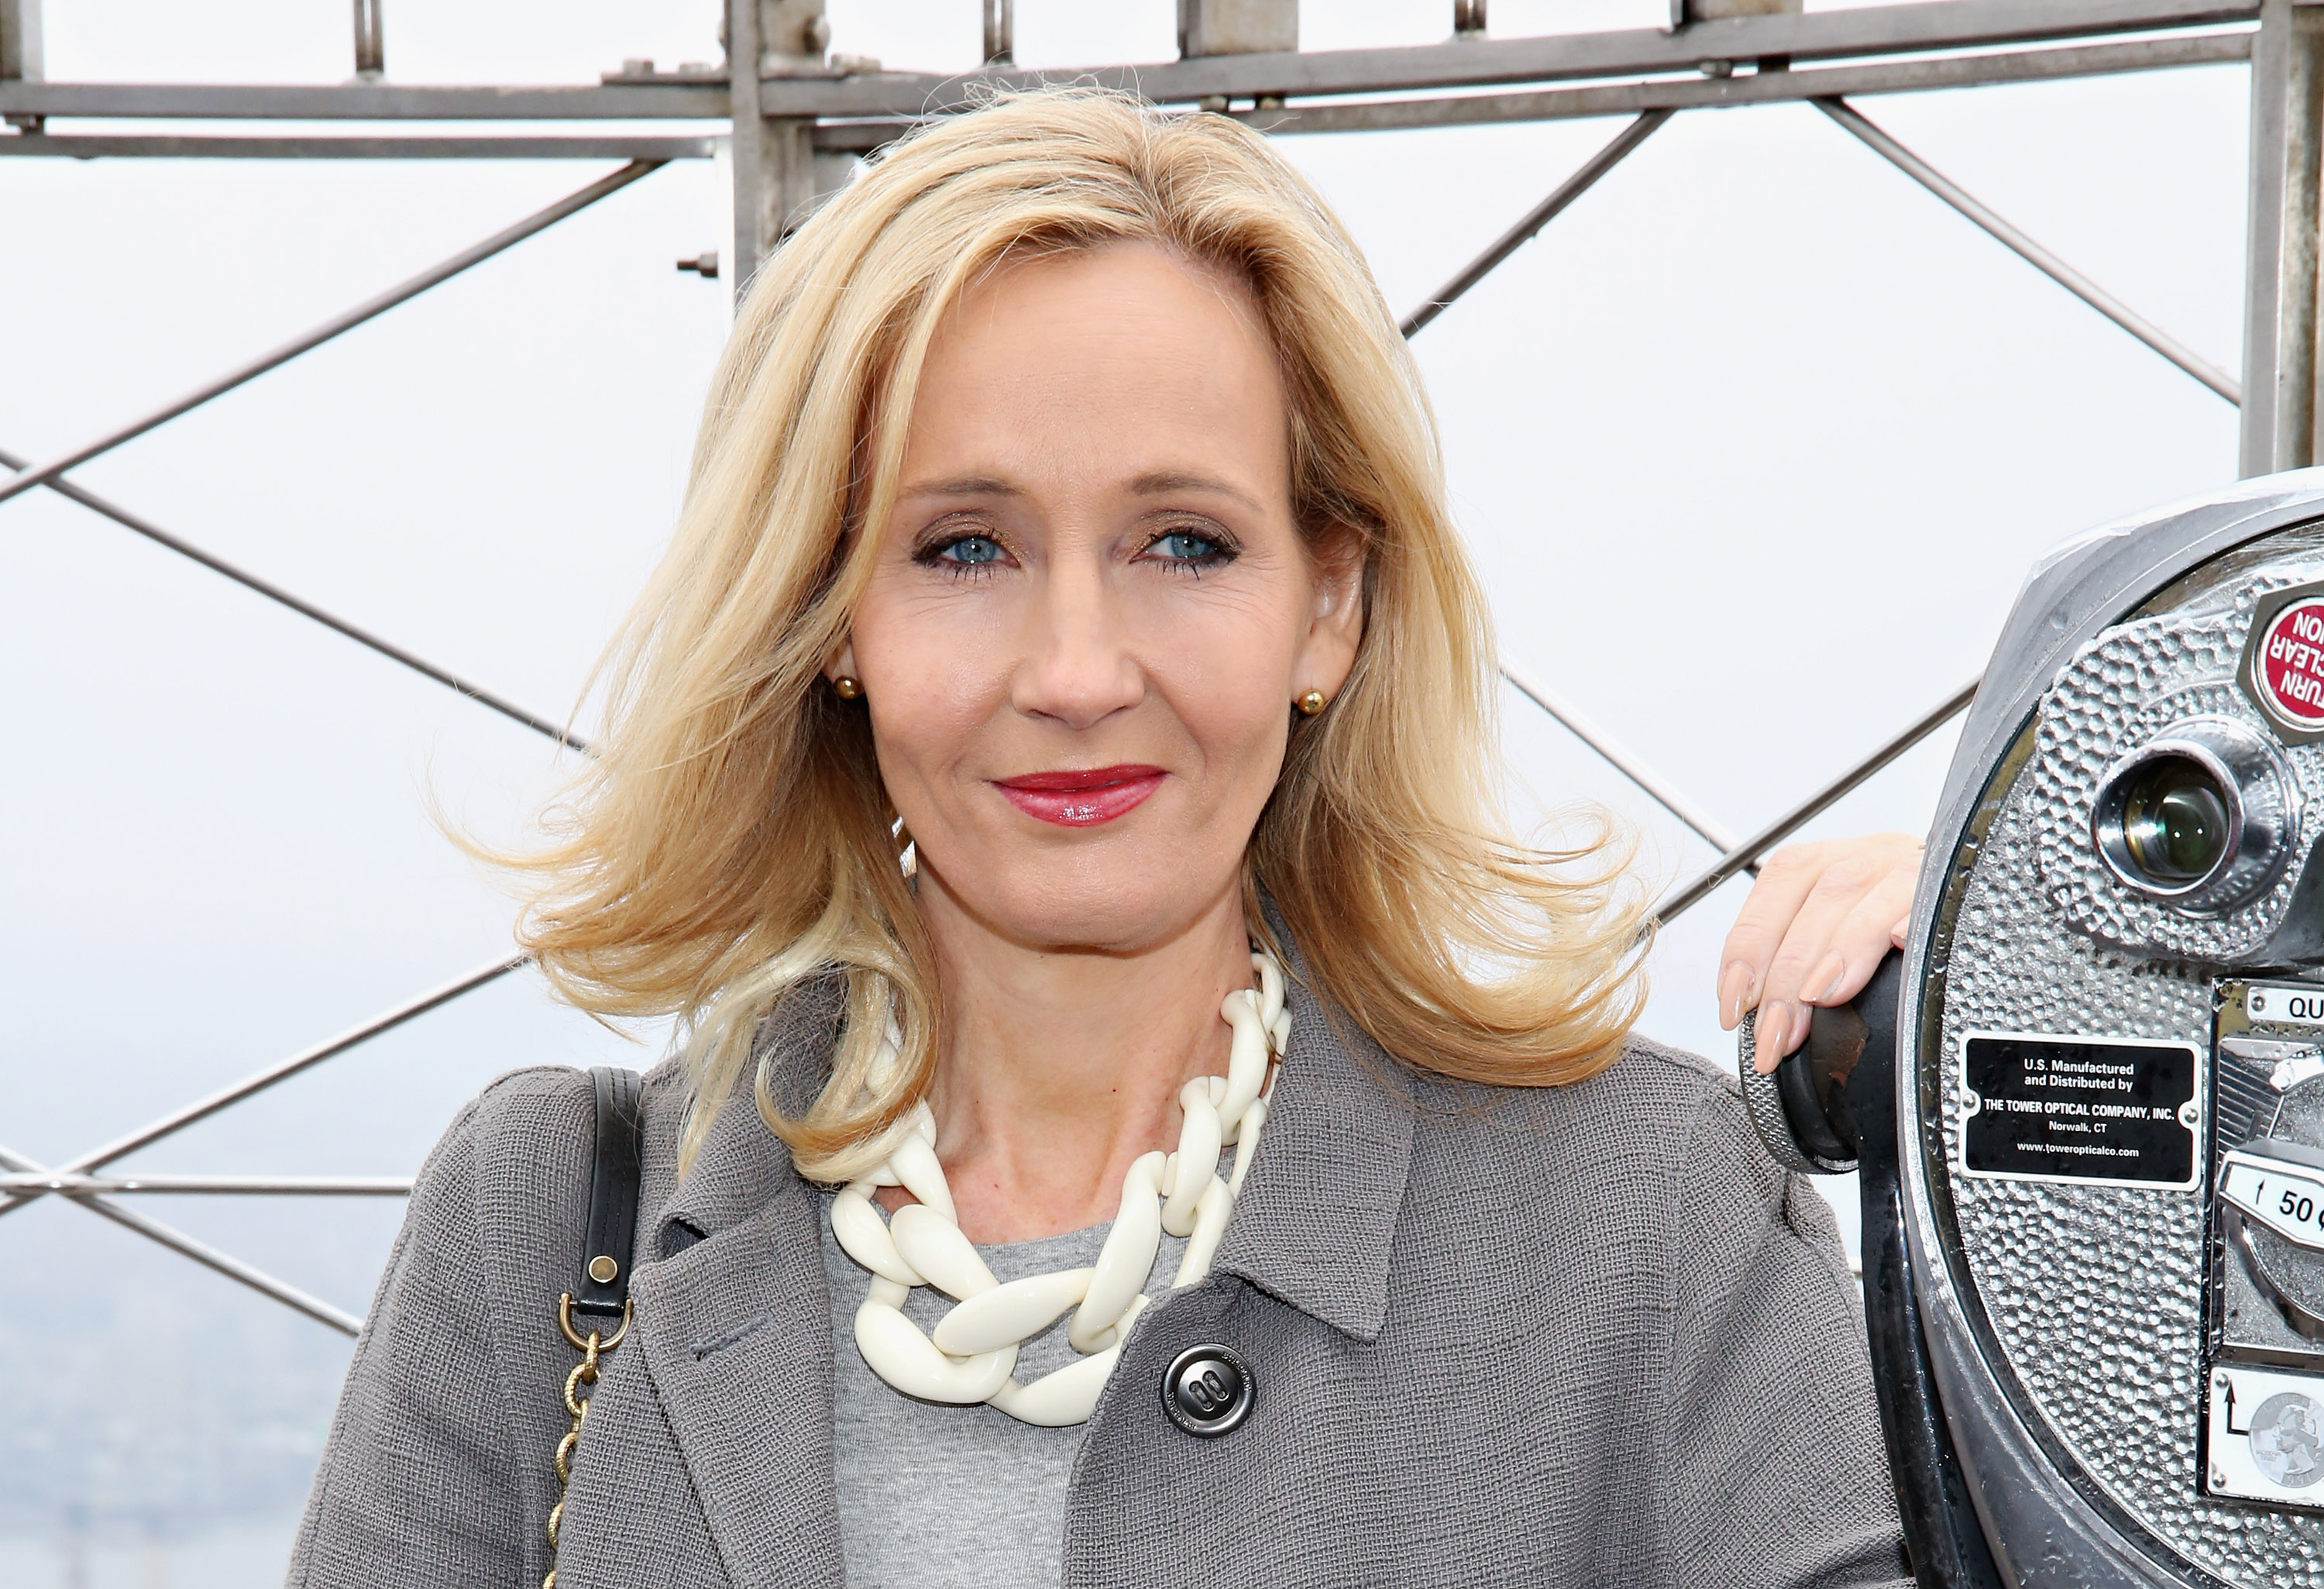 Author J.K. Rowling marks the US launch of her non-profit organization at The Empire State Building on April 9, 2015 in New York City.